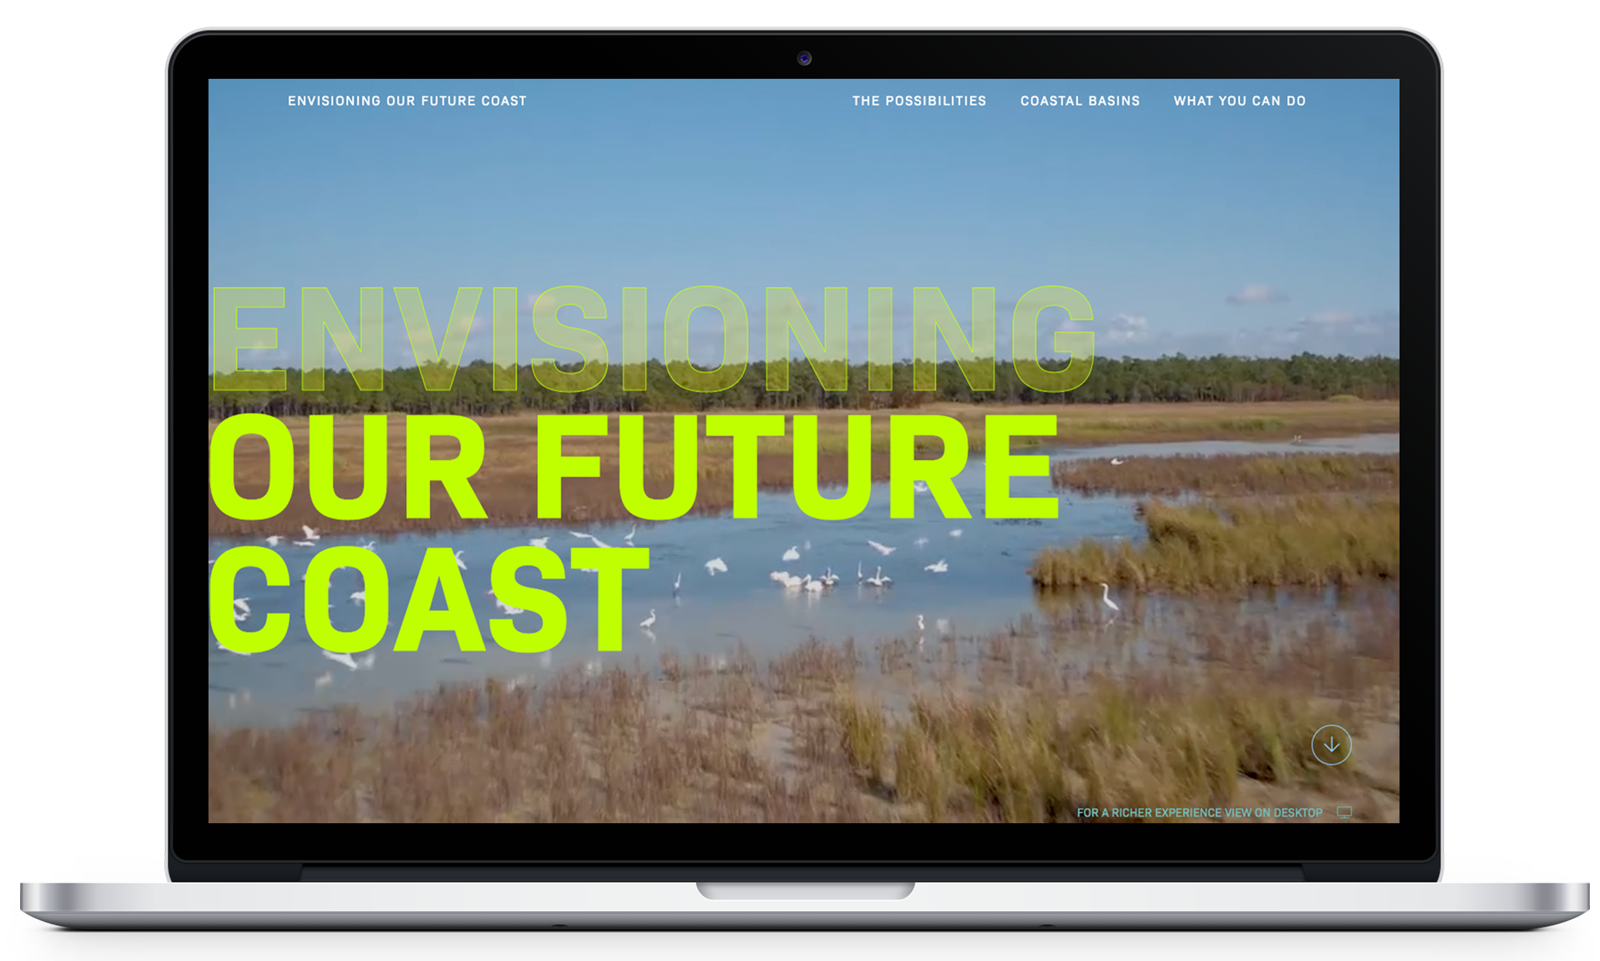 Envisioning Our Future Coast website - Deep Fried